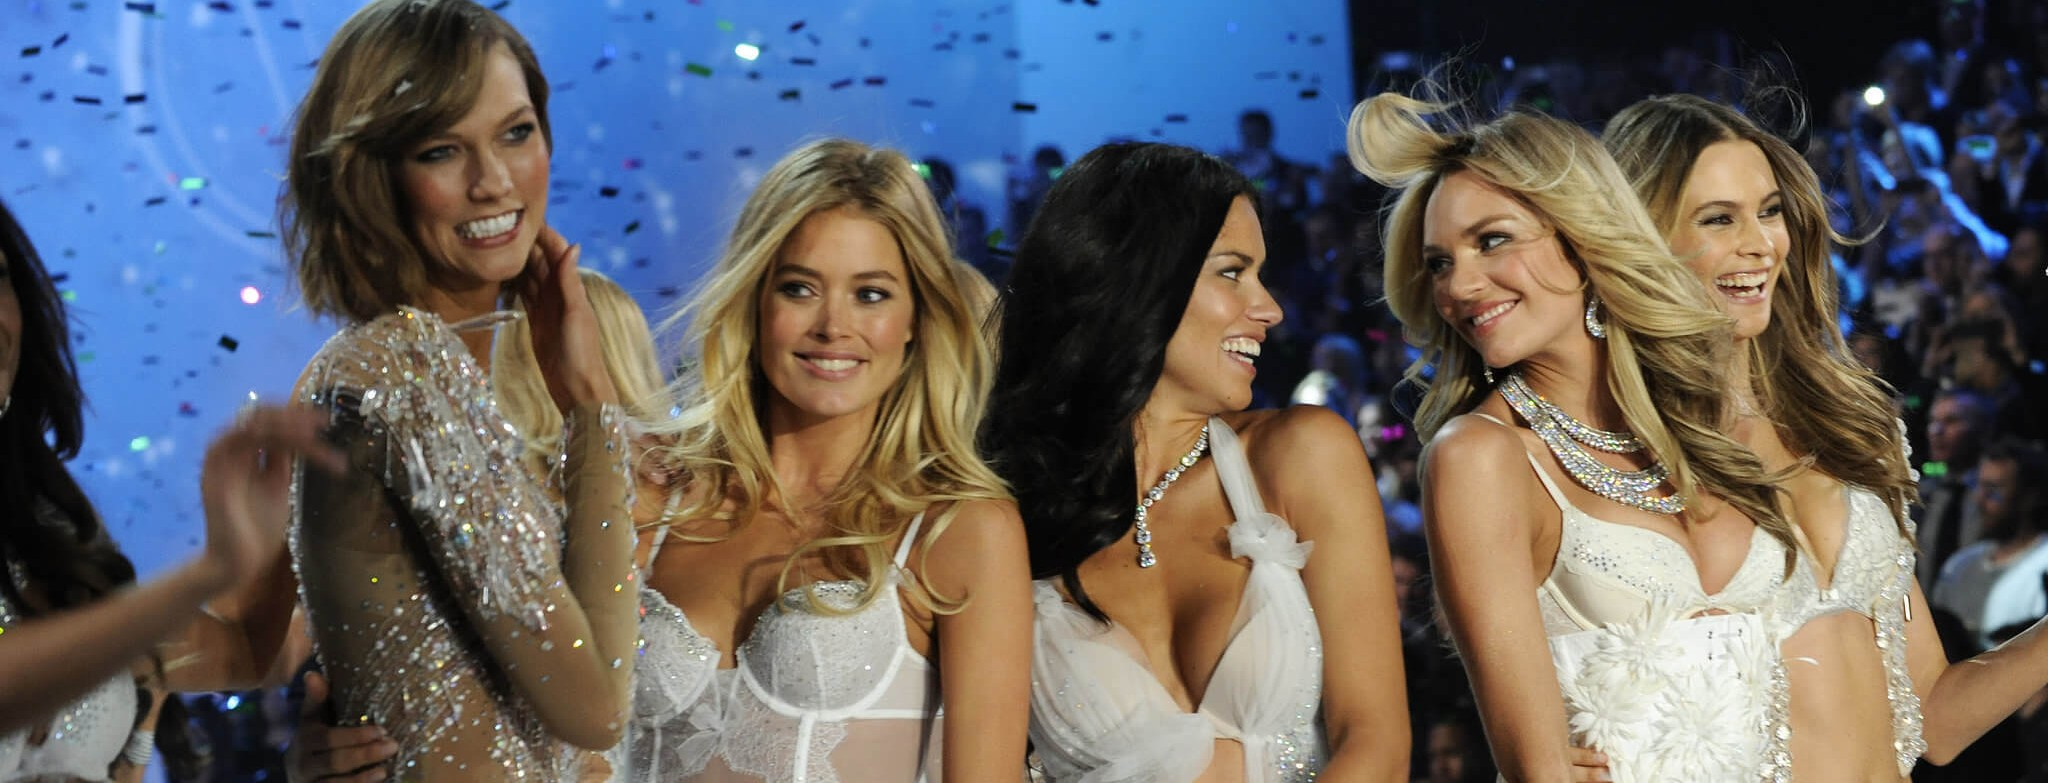 Ten of The Highest Paid Supermodels